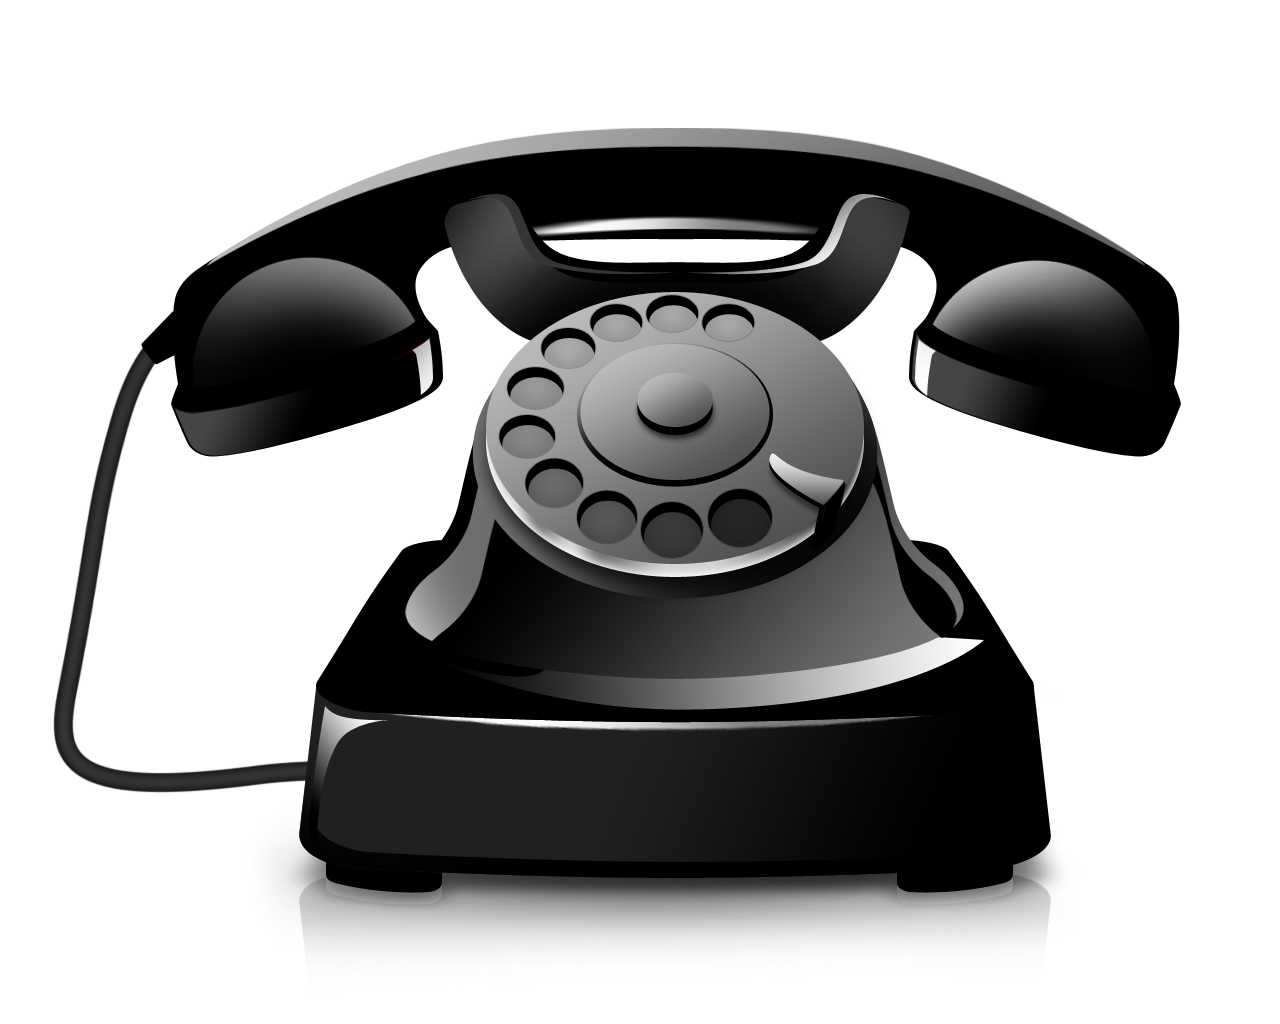 Telephone Transparent PNG Image - Telephone PNG